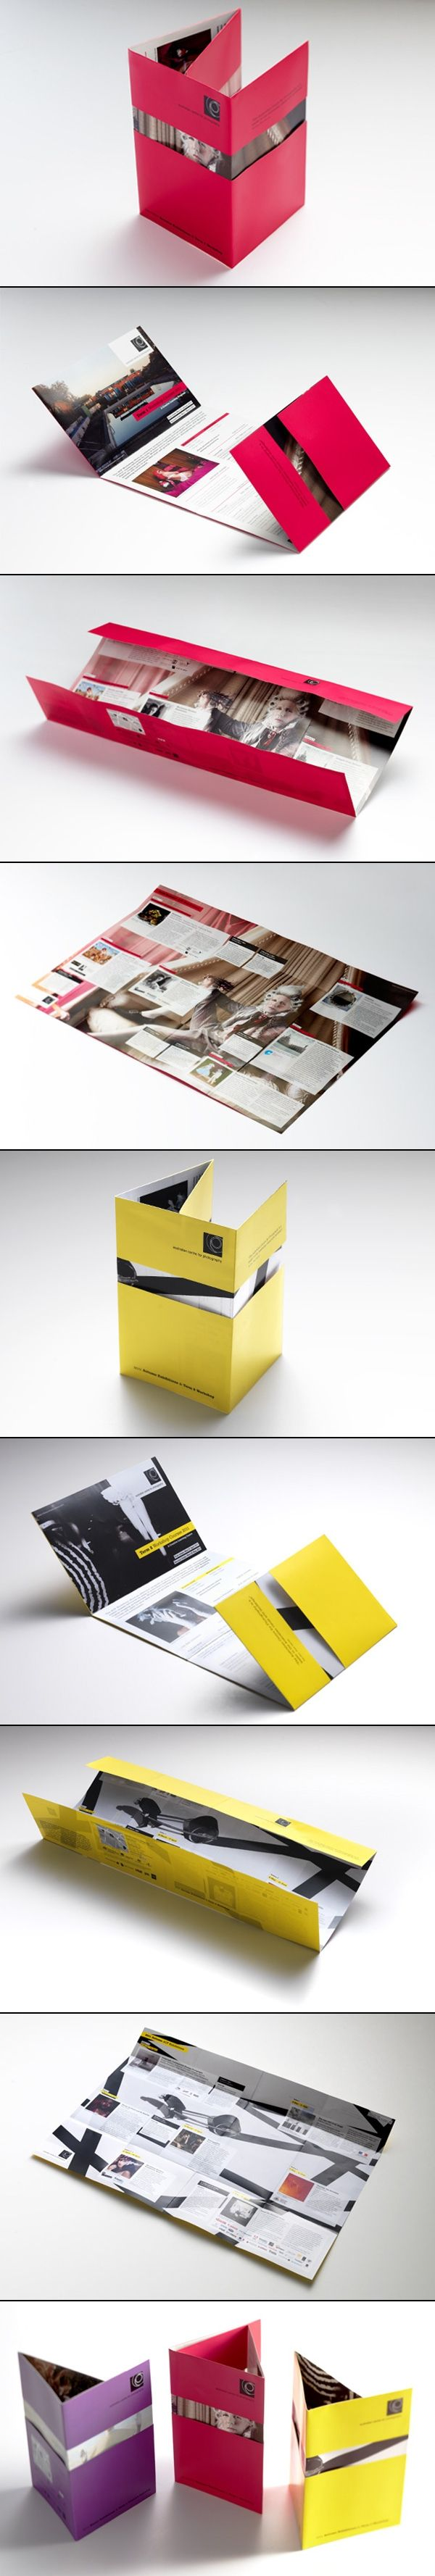 Interesting multi-fold poster brochure - nifty idea for revealing designs